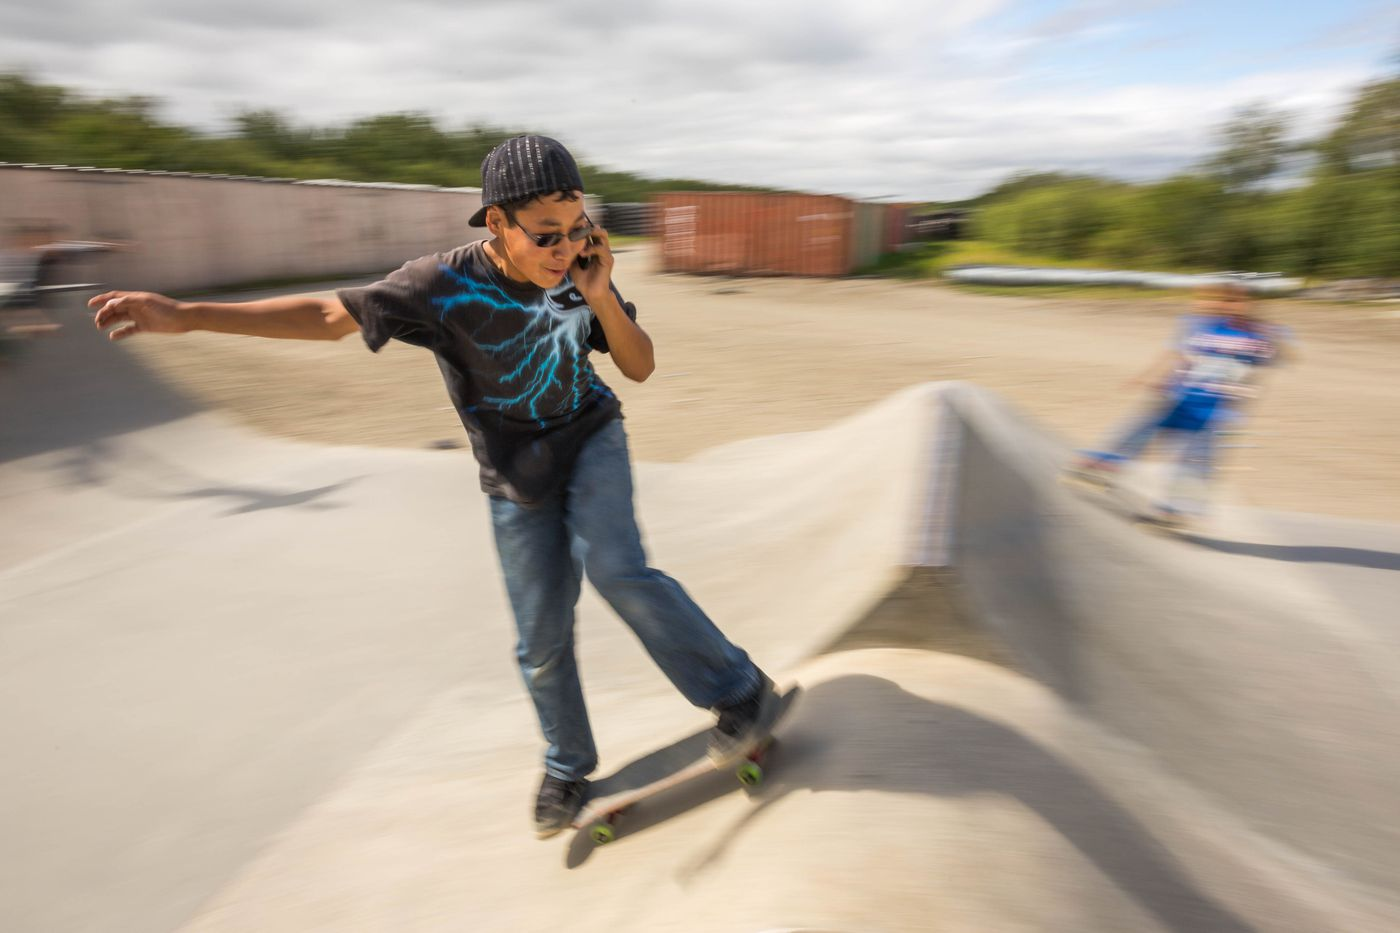 Ethan Nicolai, 13, talks to a friend on his cell phone as he skateboards at the Kwethluk skate park on Friday, August 7, 2015. The park, which was built with an Indian Health Services grant, is the only one of its kind in a small rural Alaska village. (Loren Holmes / ADN)